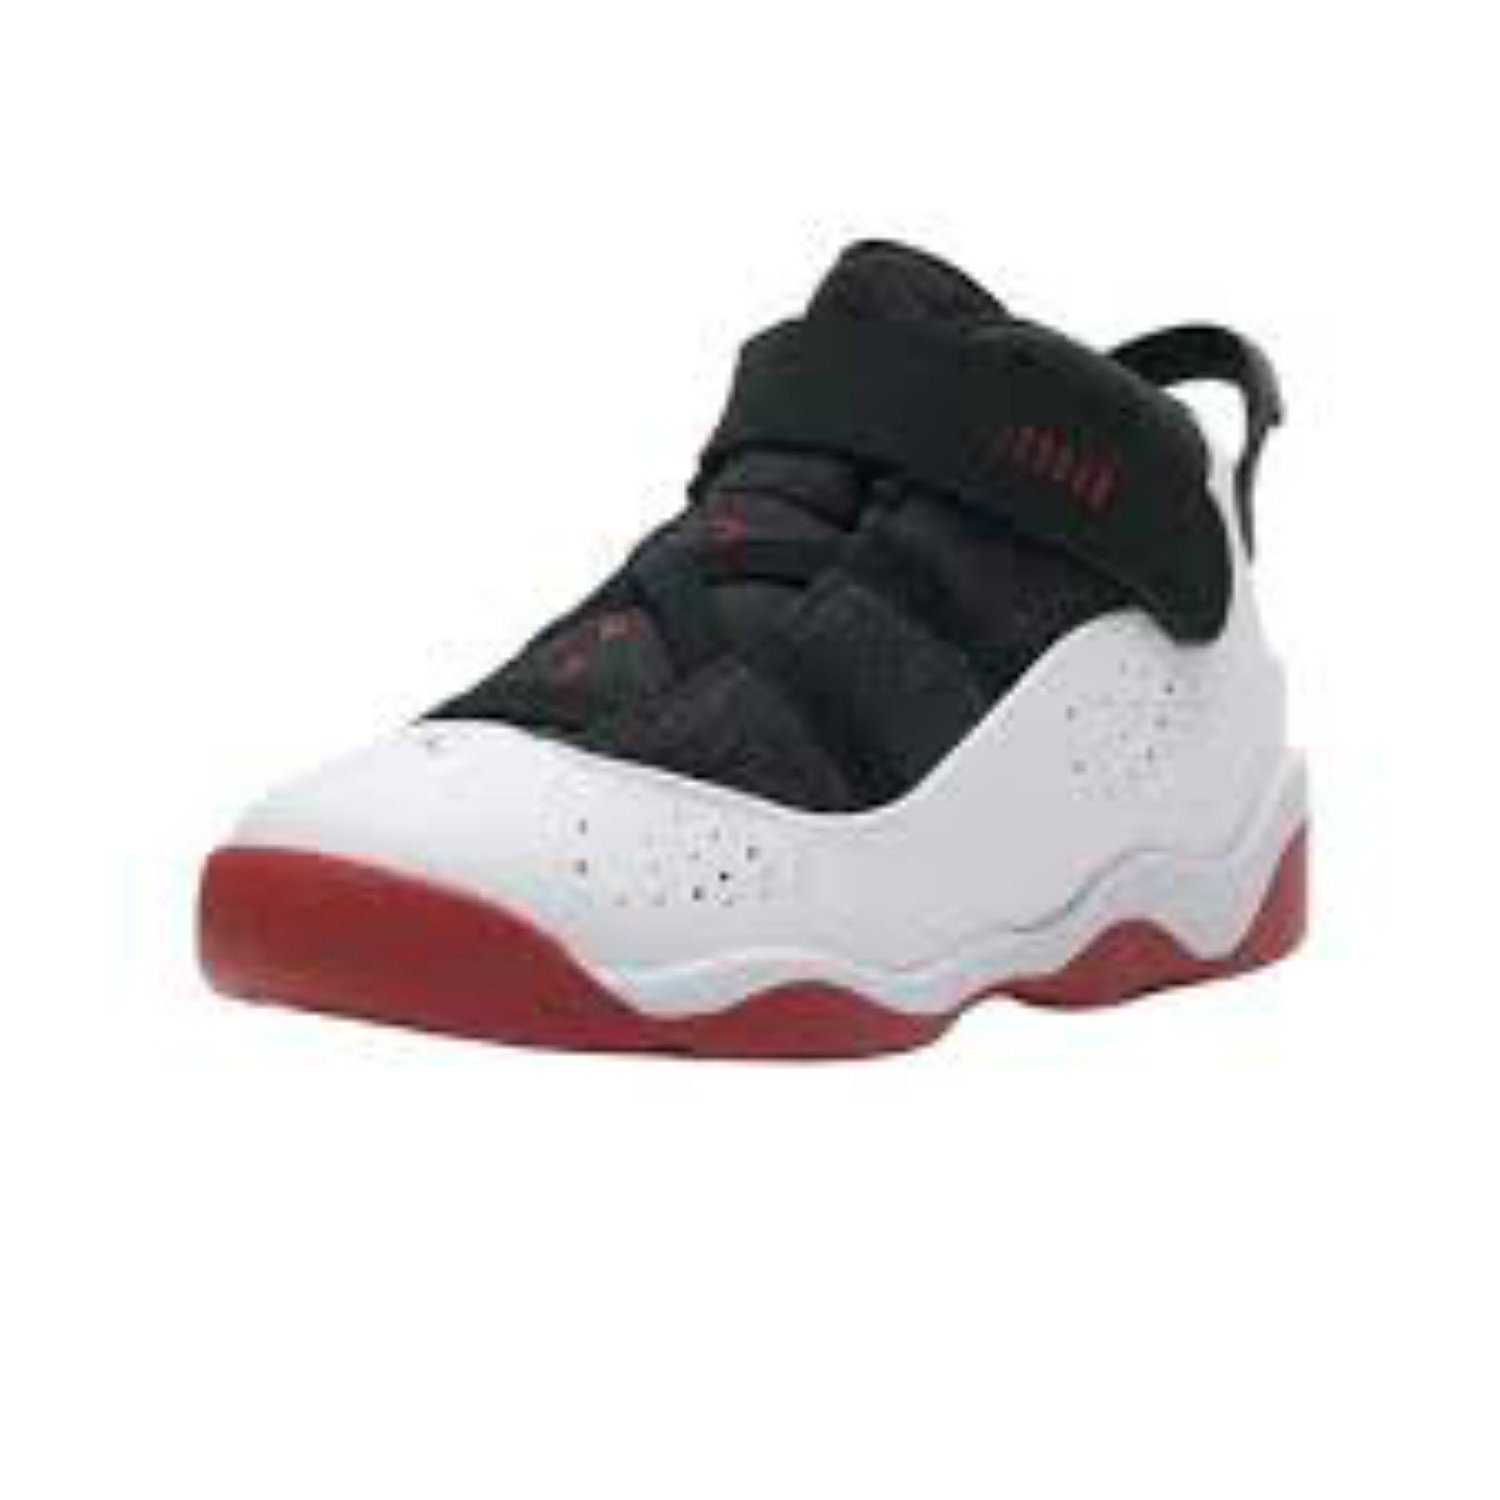 Jordan Toddler 6 Rings BT